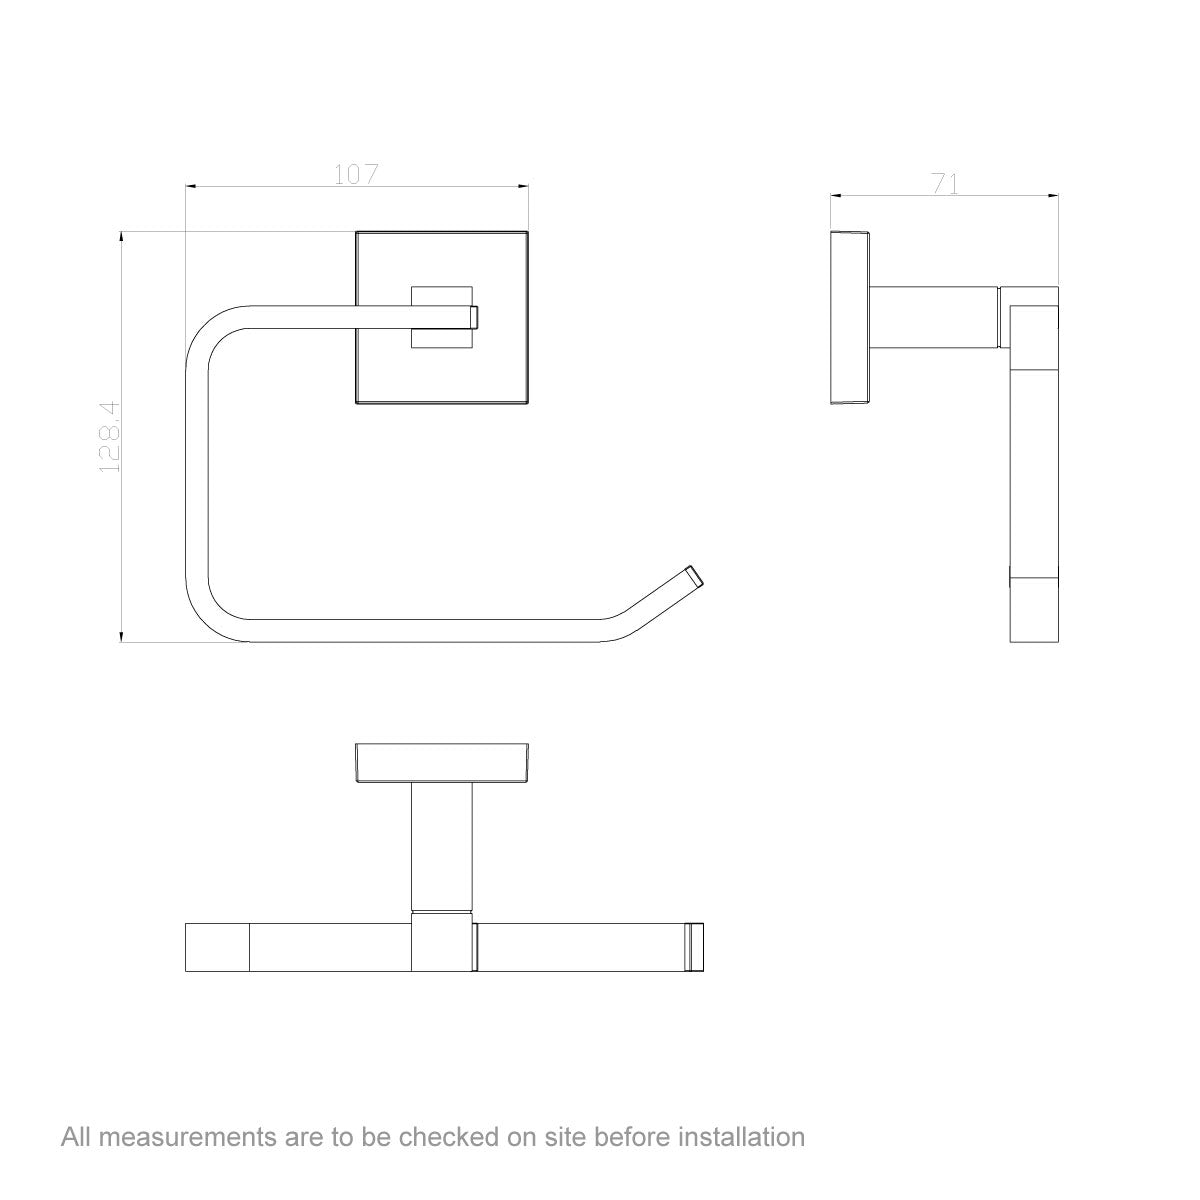 Dimensions for Orchard Flex toilet roll holder